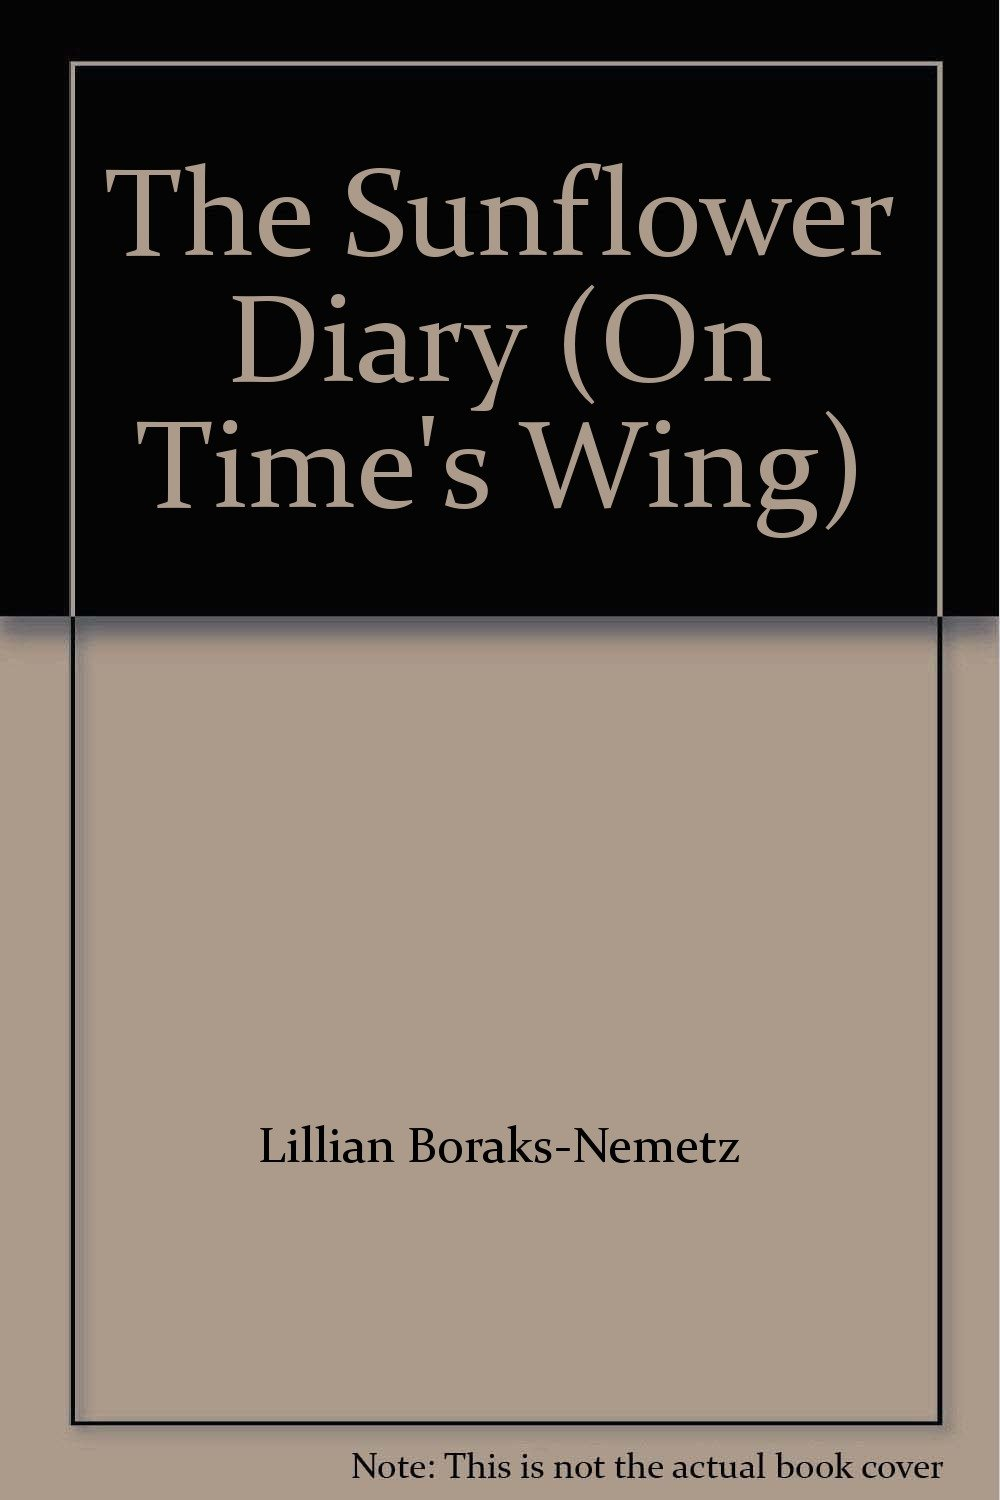 The Sunflower Diary (On Time's Wing)